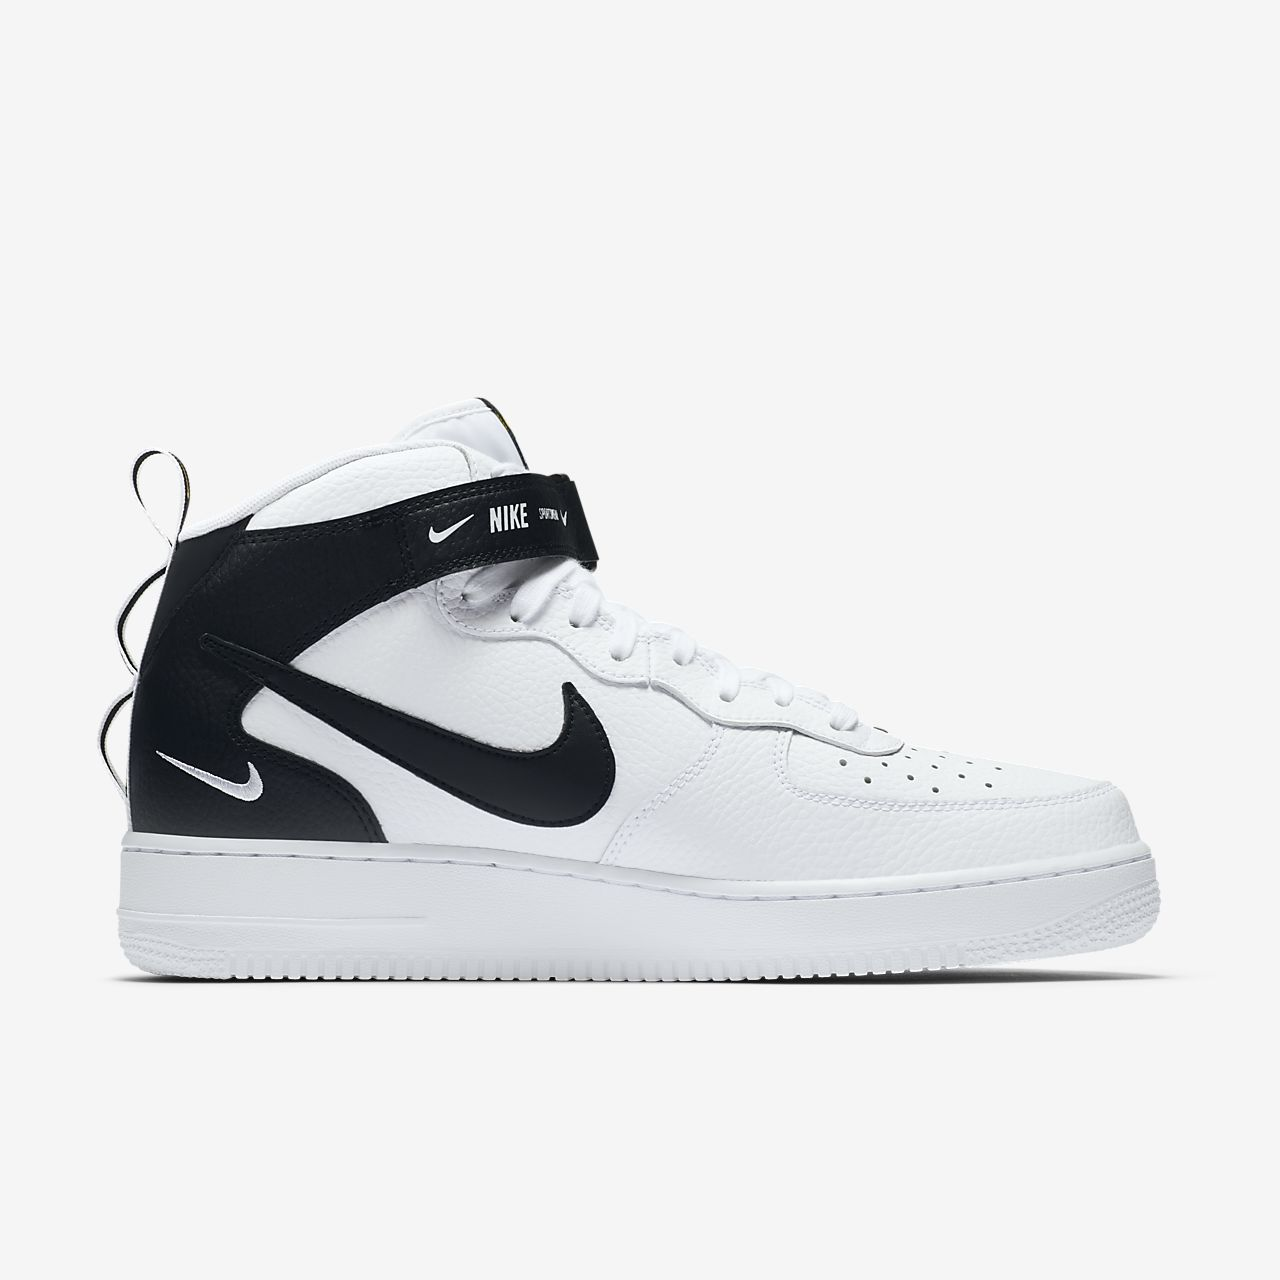 sports shoes c651a 00efe Nike Air Force 1 07 Mid LV8